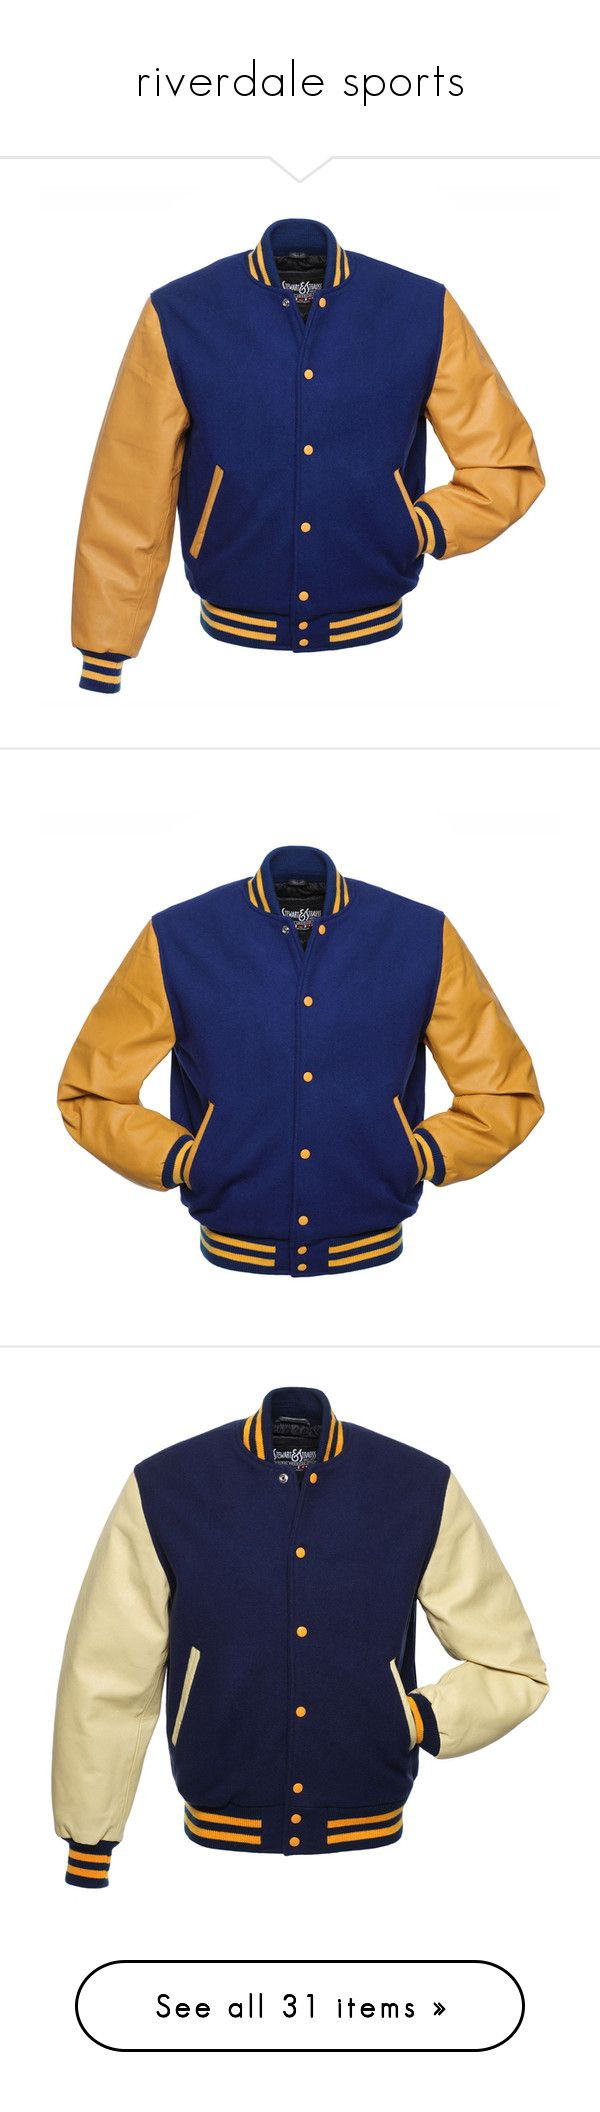 """riverdale sports"" by silly-laura ❤ liked on Polyvore featuring BlueandGold, riverdale, riverdalevixens, outerwear, jackets, leather varsity jackets, gold jacket, varsity letter jackets, royal blue leather jacket and leather jackets"